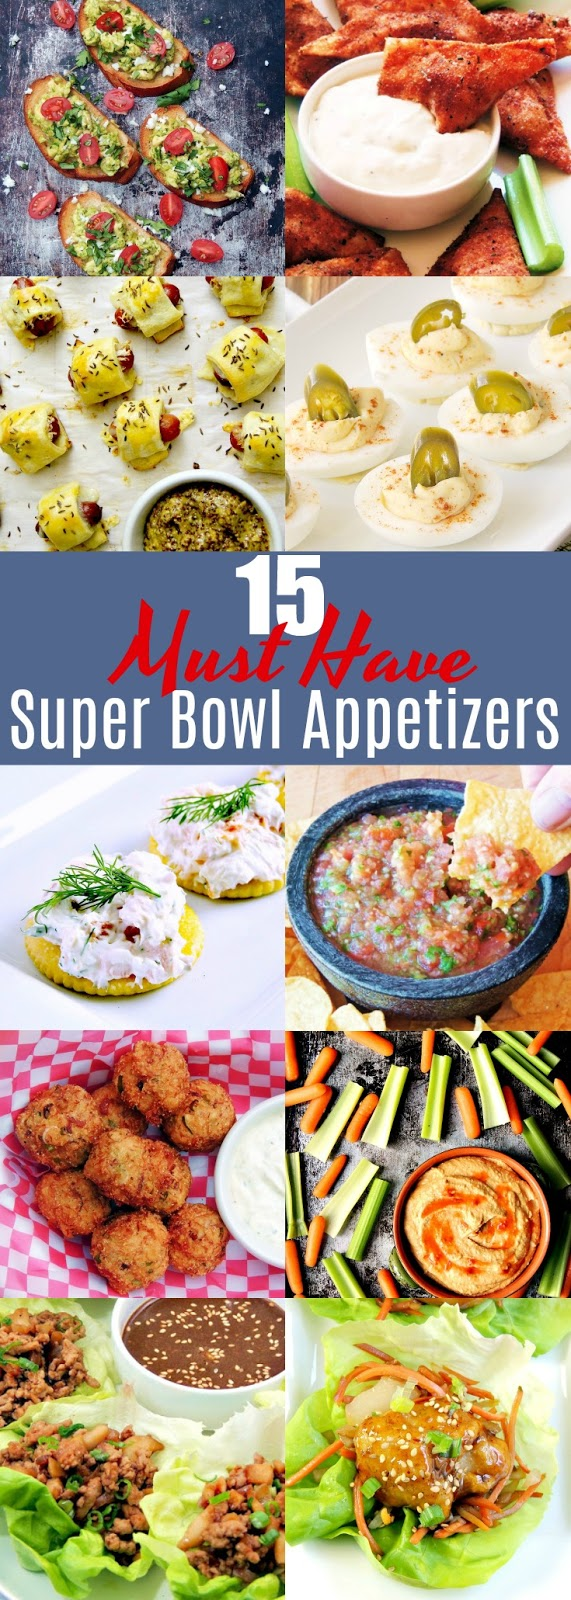 super bowl appetizers 15 must bowl appetizers s kozy kitchen 31412